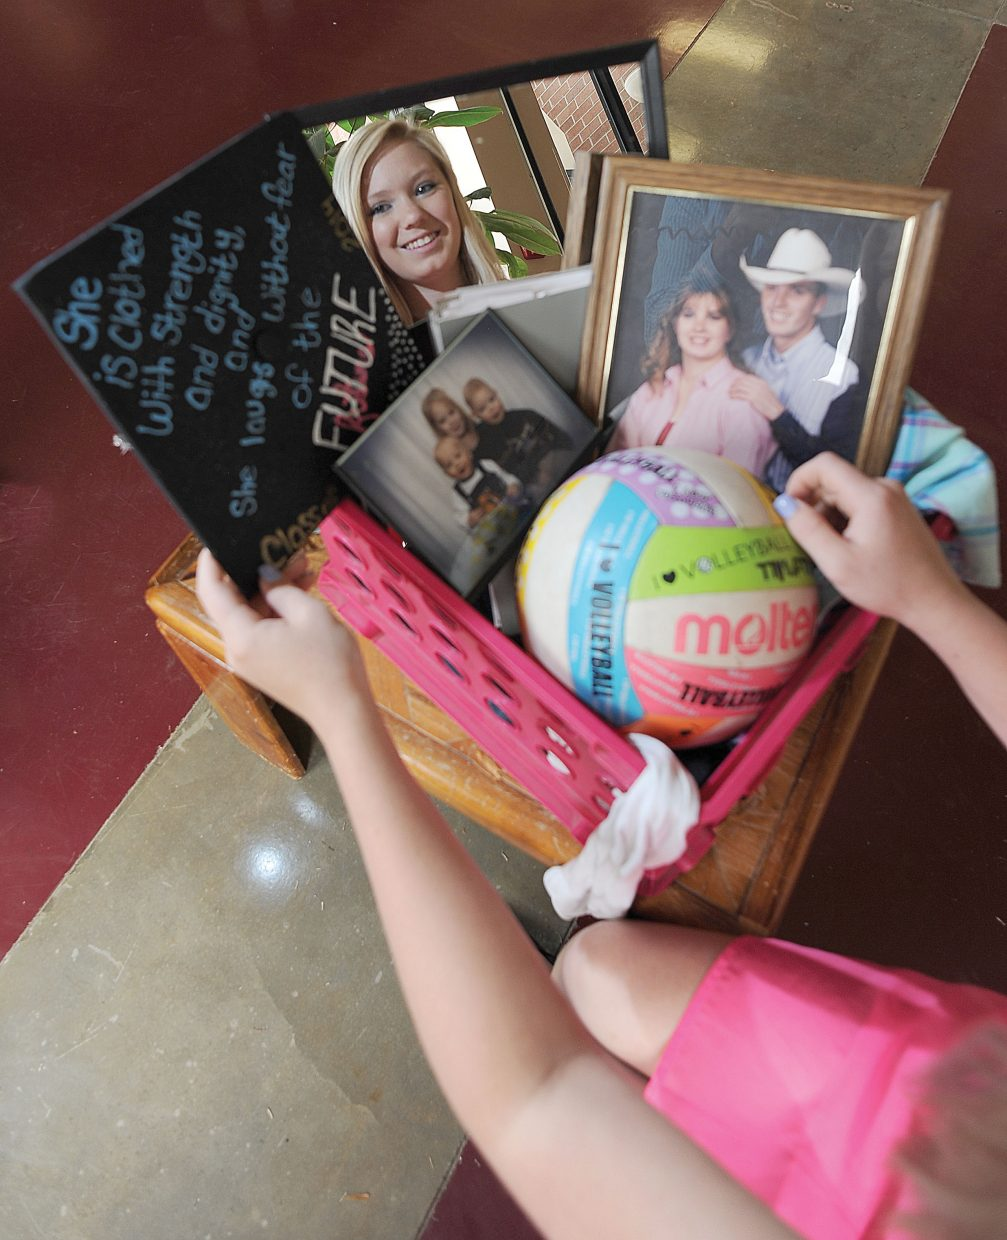 Emilee Tritz's motivation to go to college is simple: her family hasn't, so why not be the first?